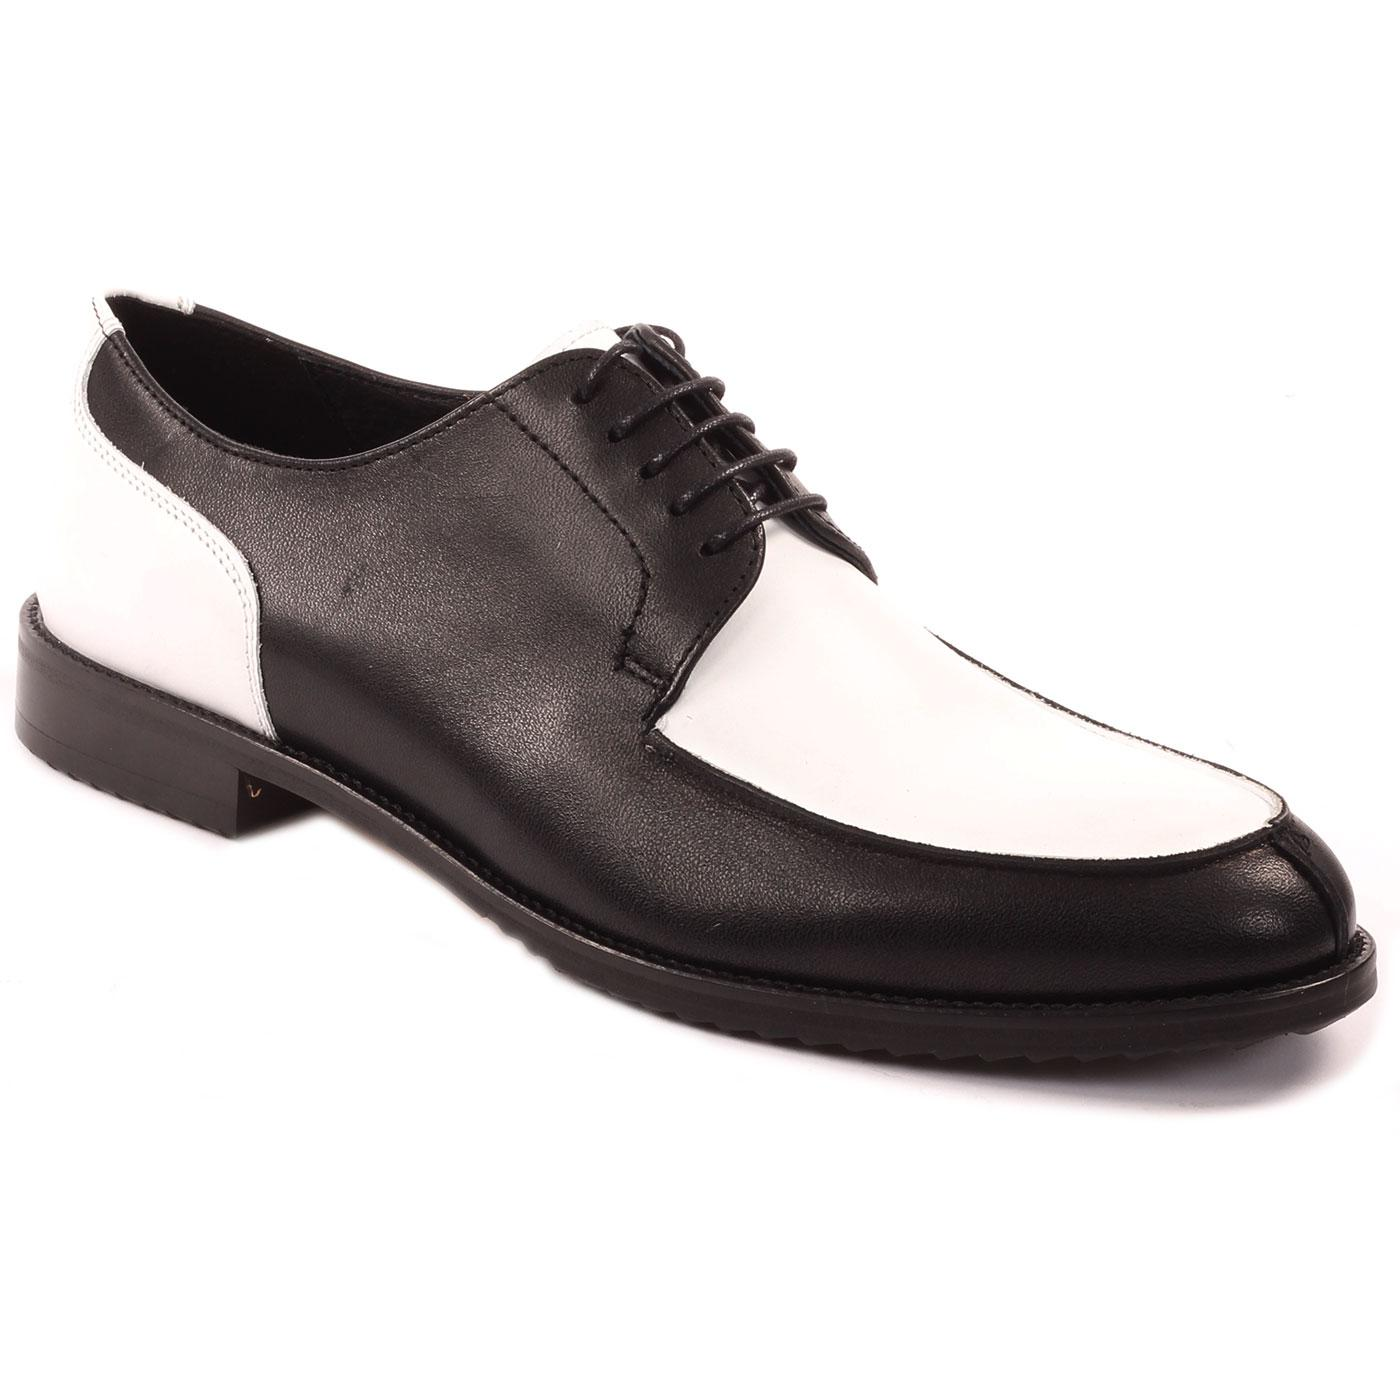 LACUZZO Mod Two Tone Leather Jam Shoes BLACK/WHITE